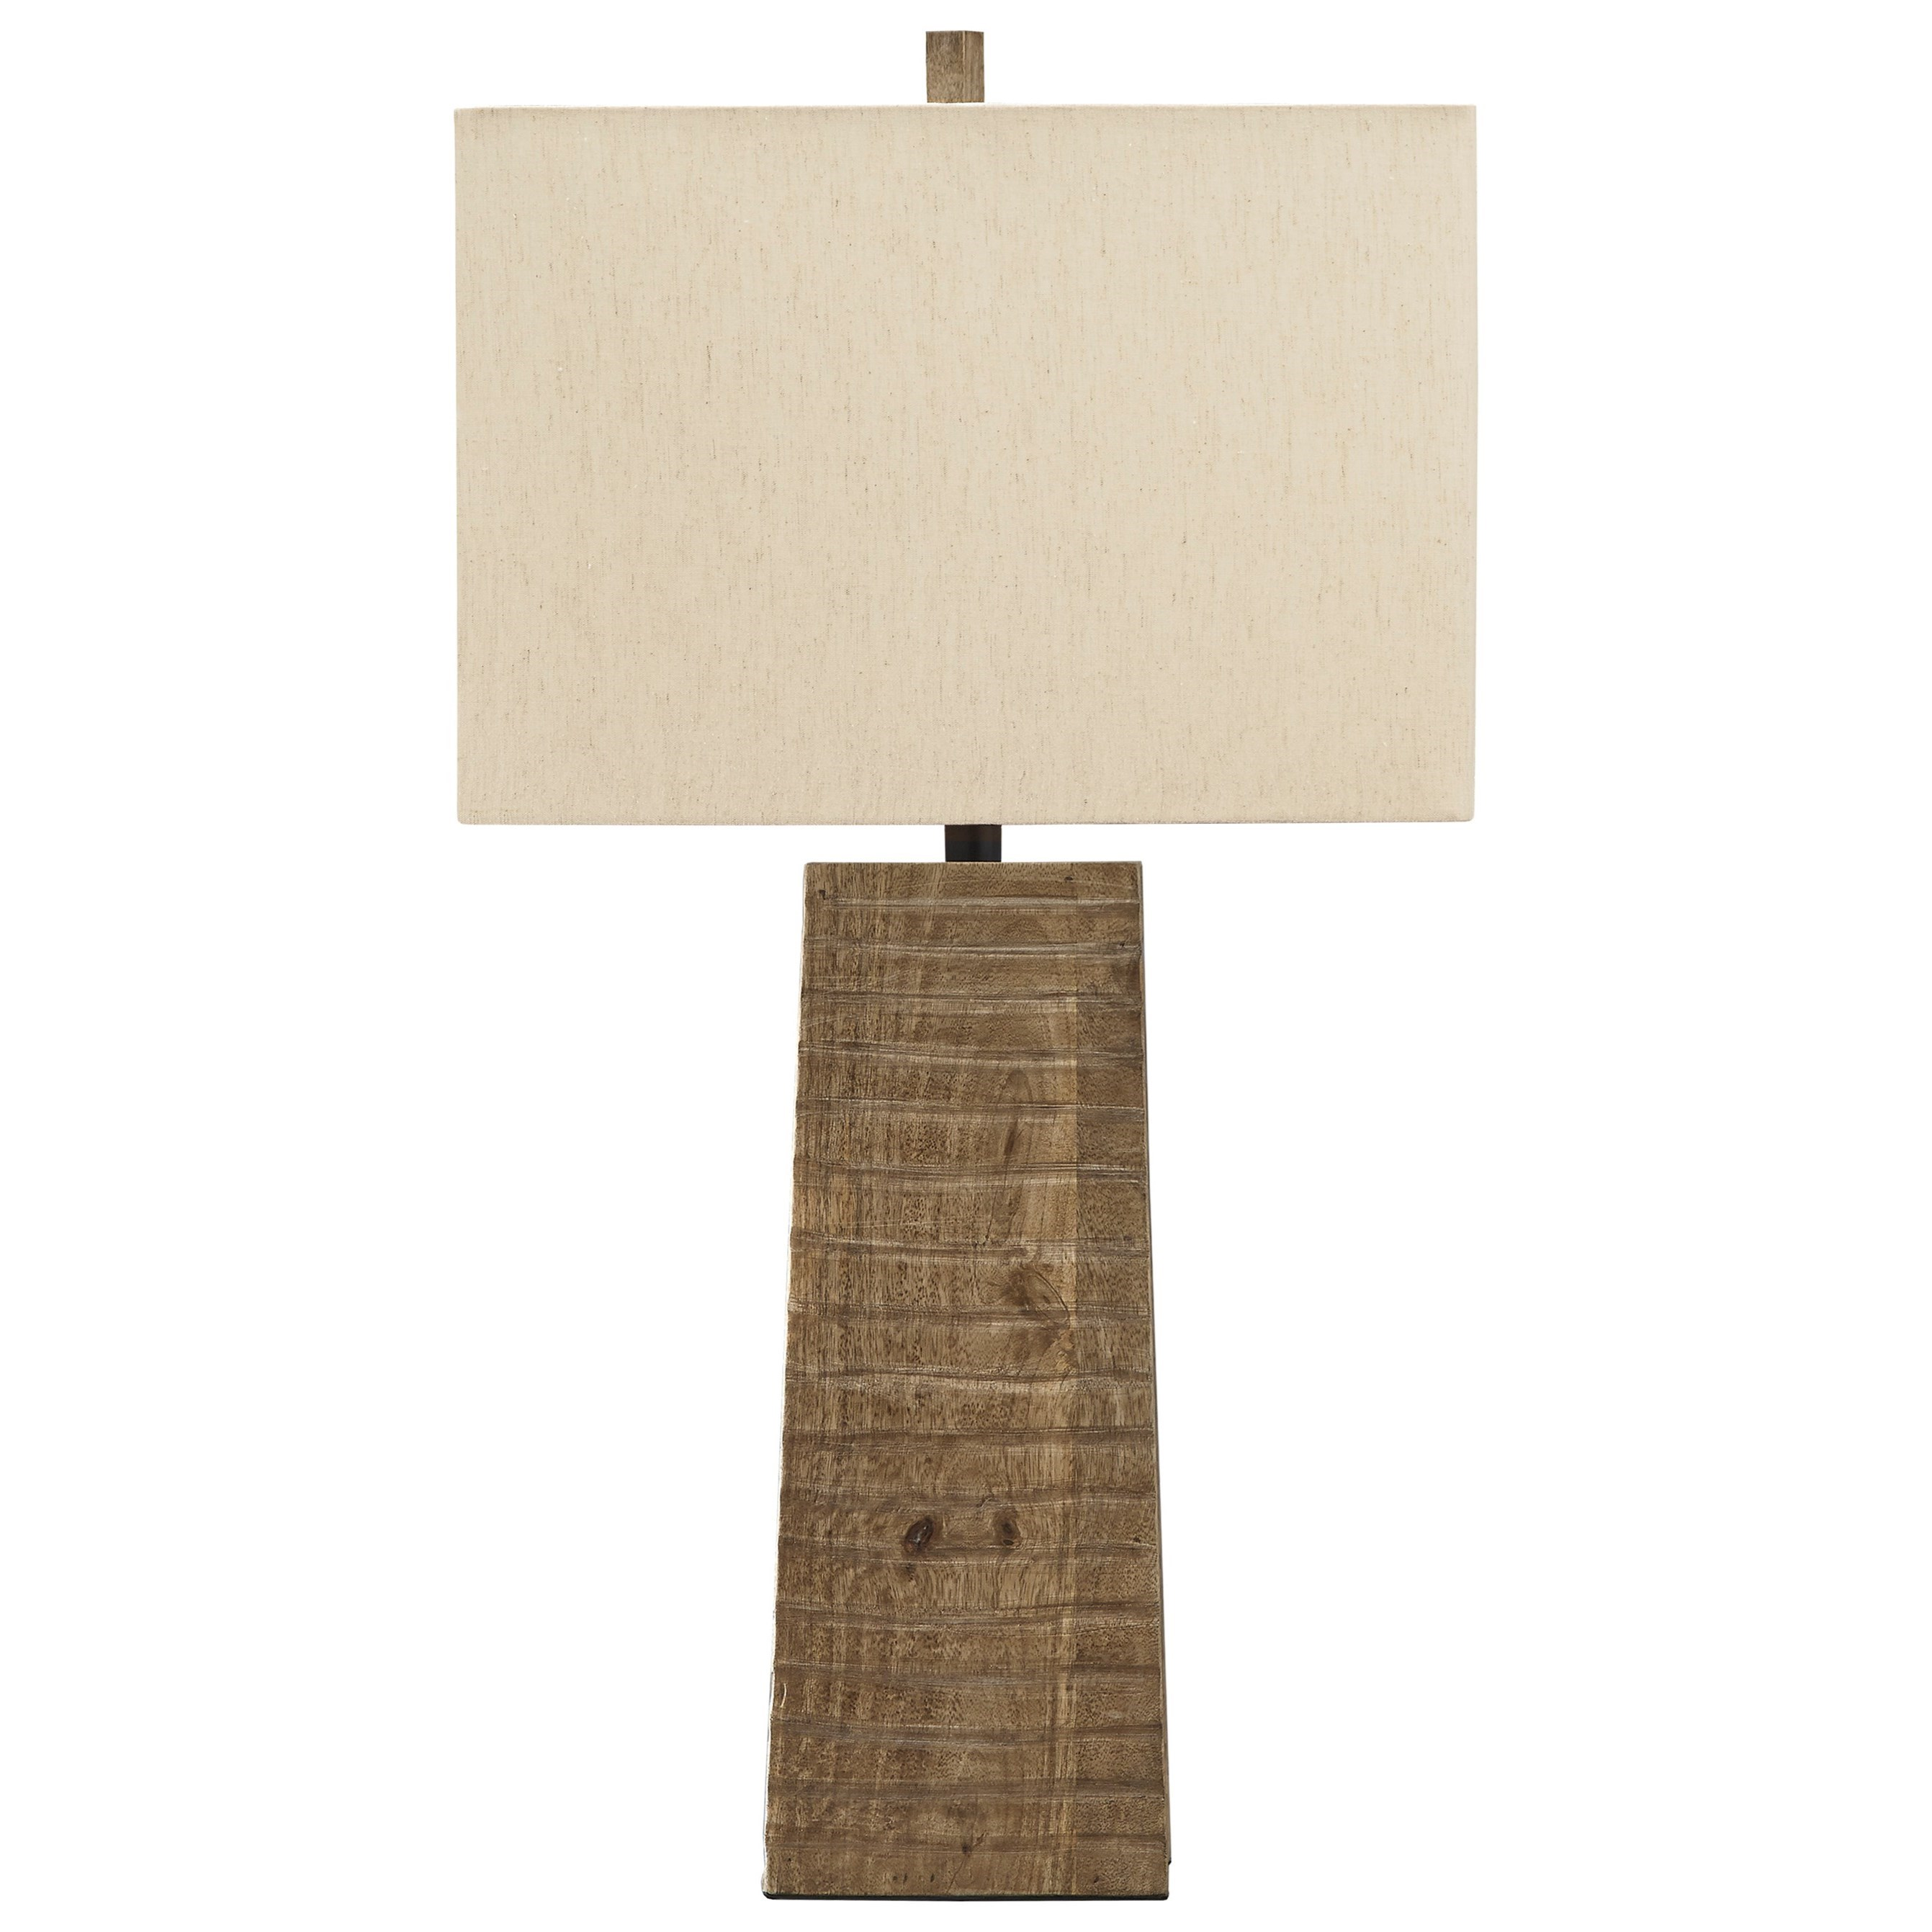 Lamps - Casual Deonte Brown Wood Table Lamp by Signature Design by Ashley at Northeast Factory Direct